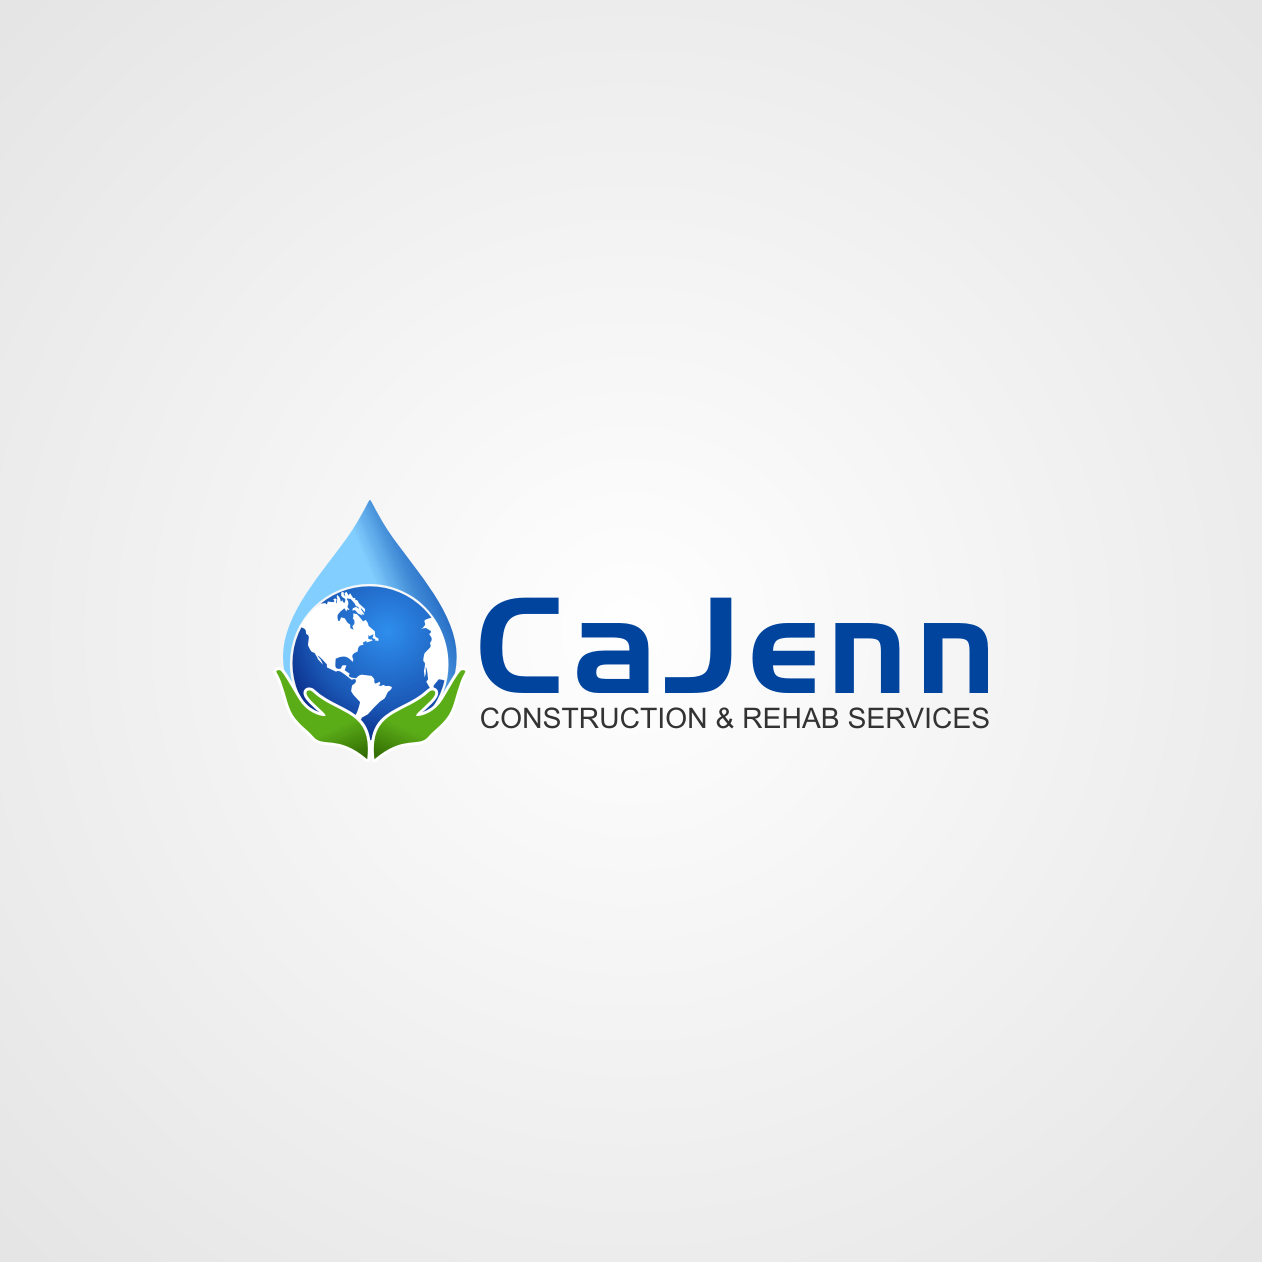 Logo Design by rifatz - Entry No. 16 in the Logo Design Contest New Logo Design for CaJenn Construction & Rehab Services.